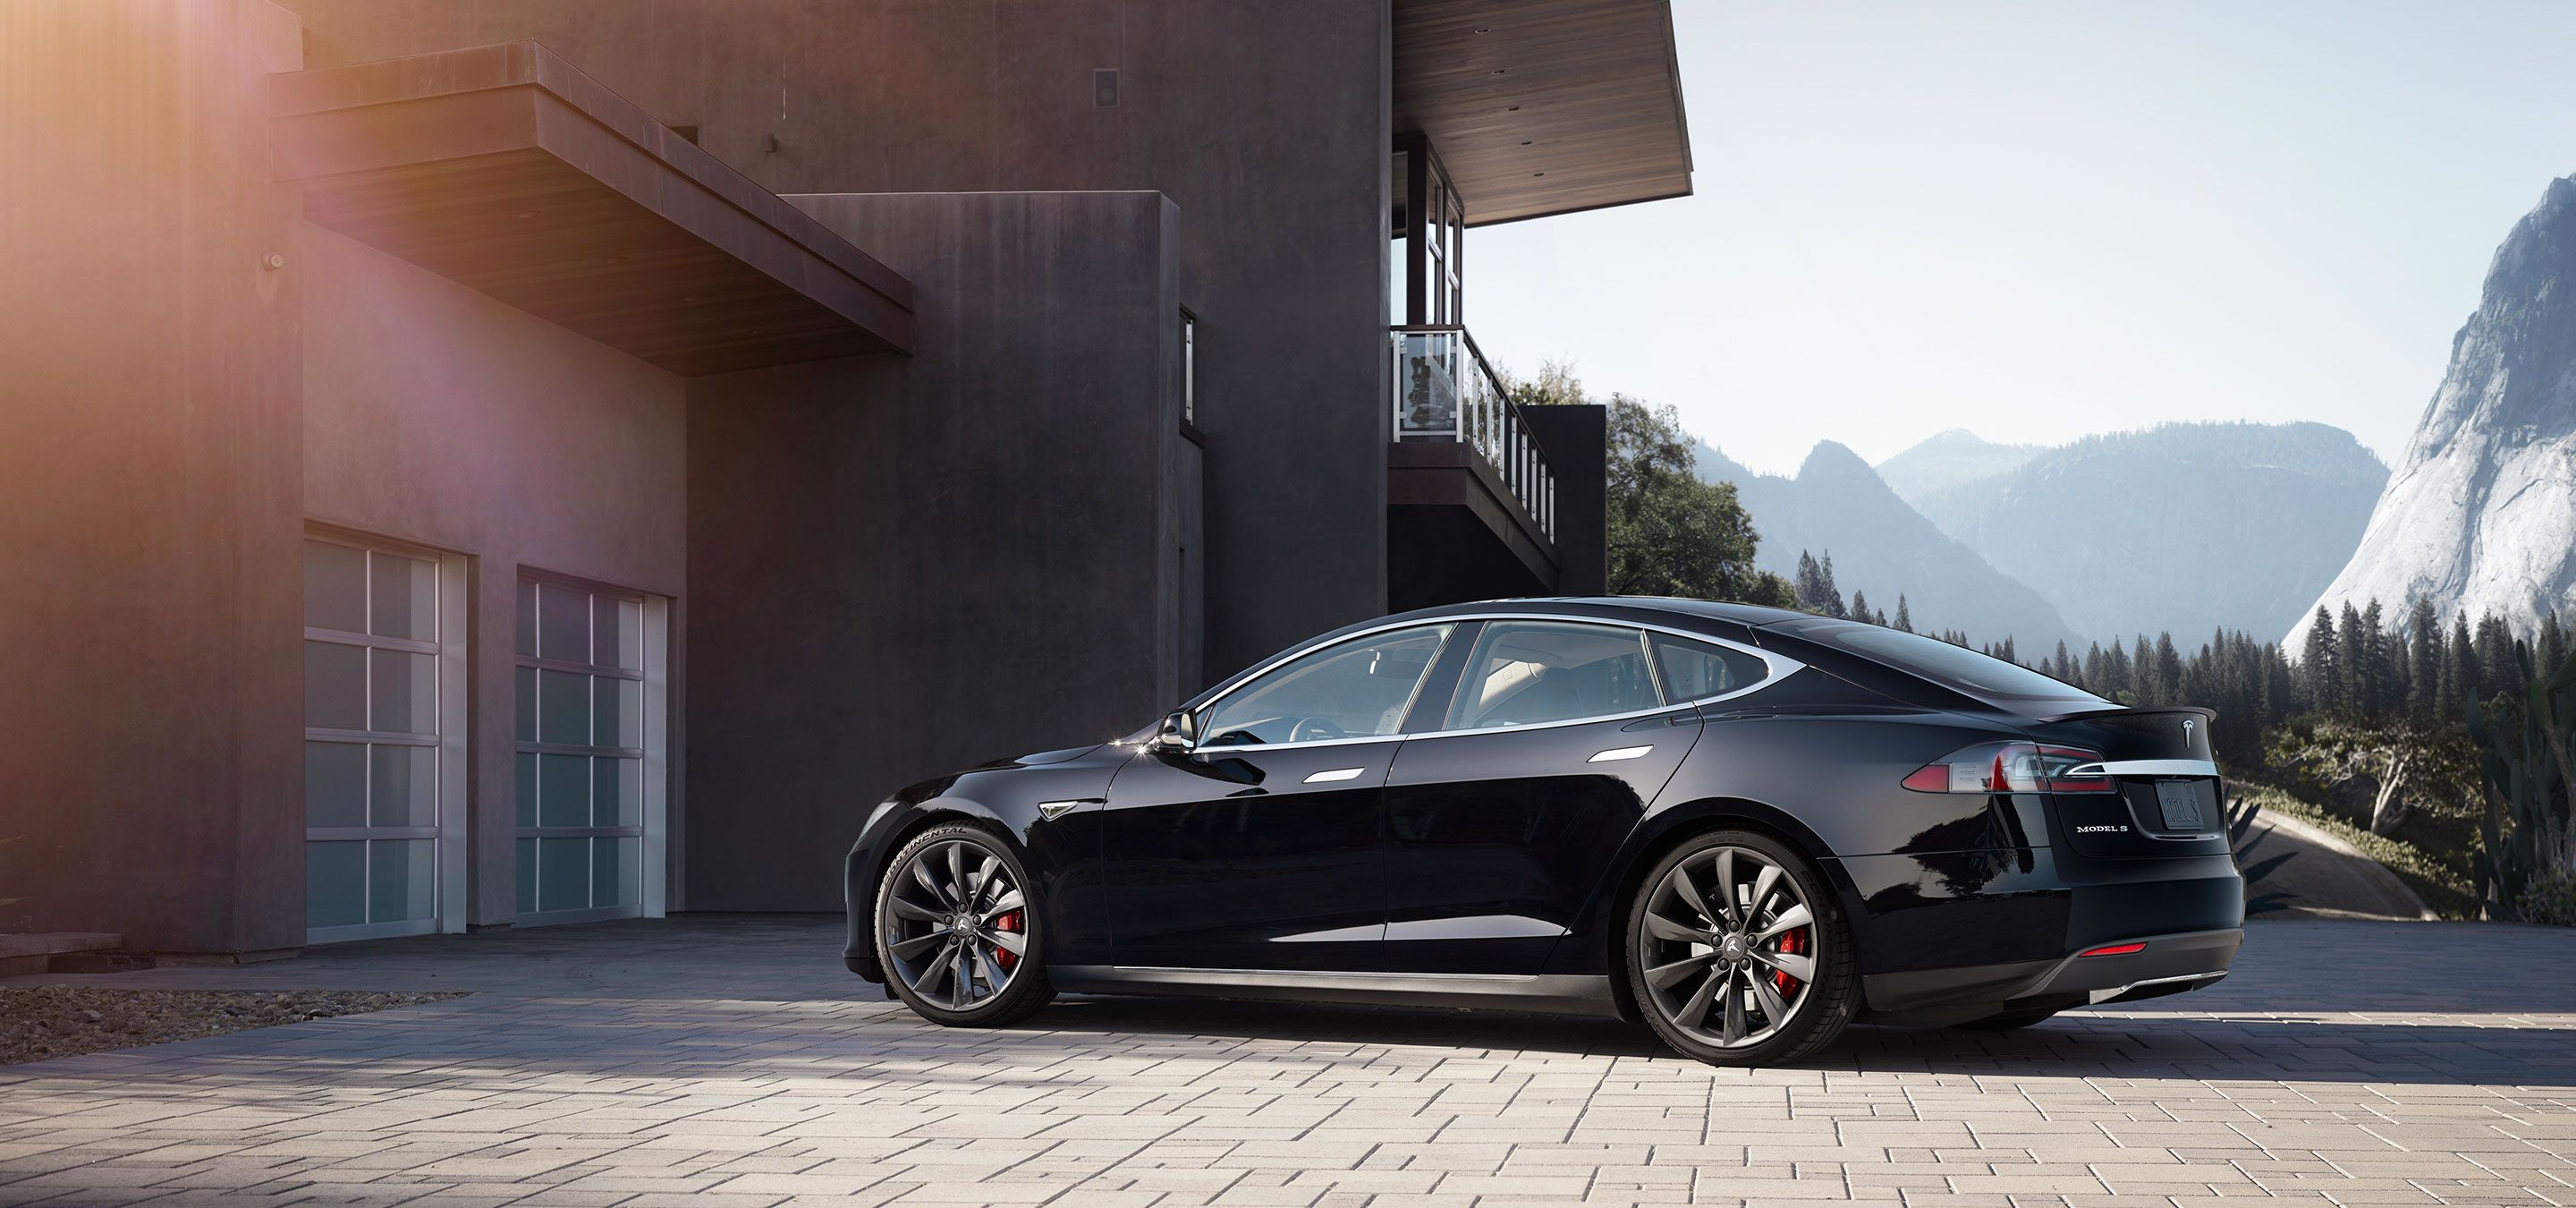 25 best tesla model s cost ideas on pinterest tesla cost tesla car cost and tesla s